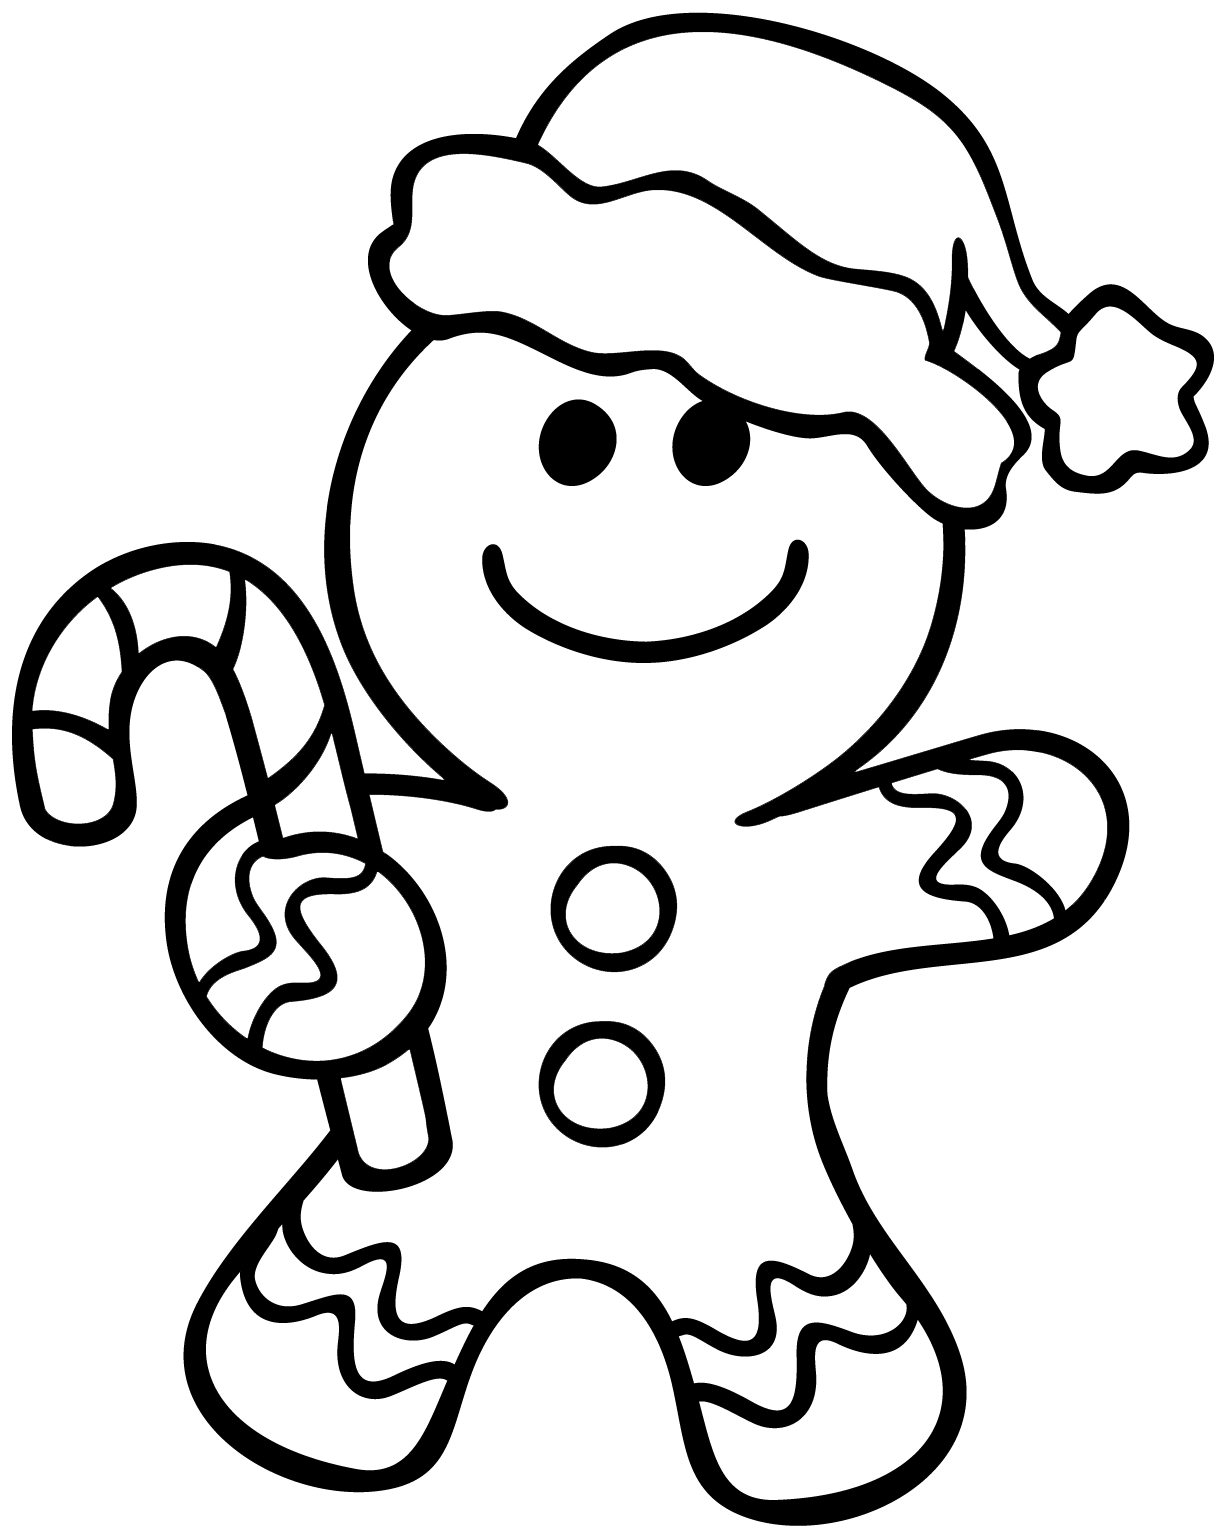 1228x1540 Gingerbread Man Coloring Pages